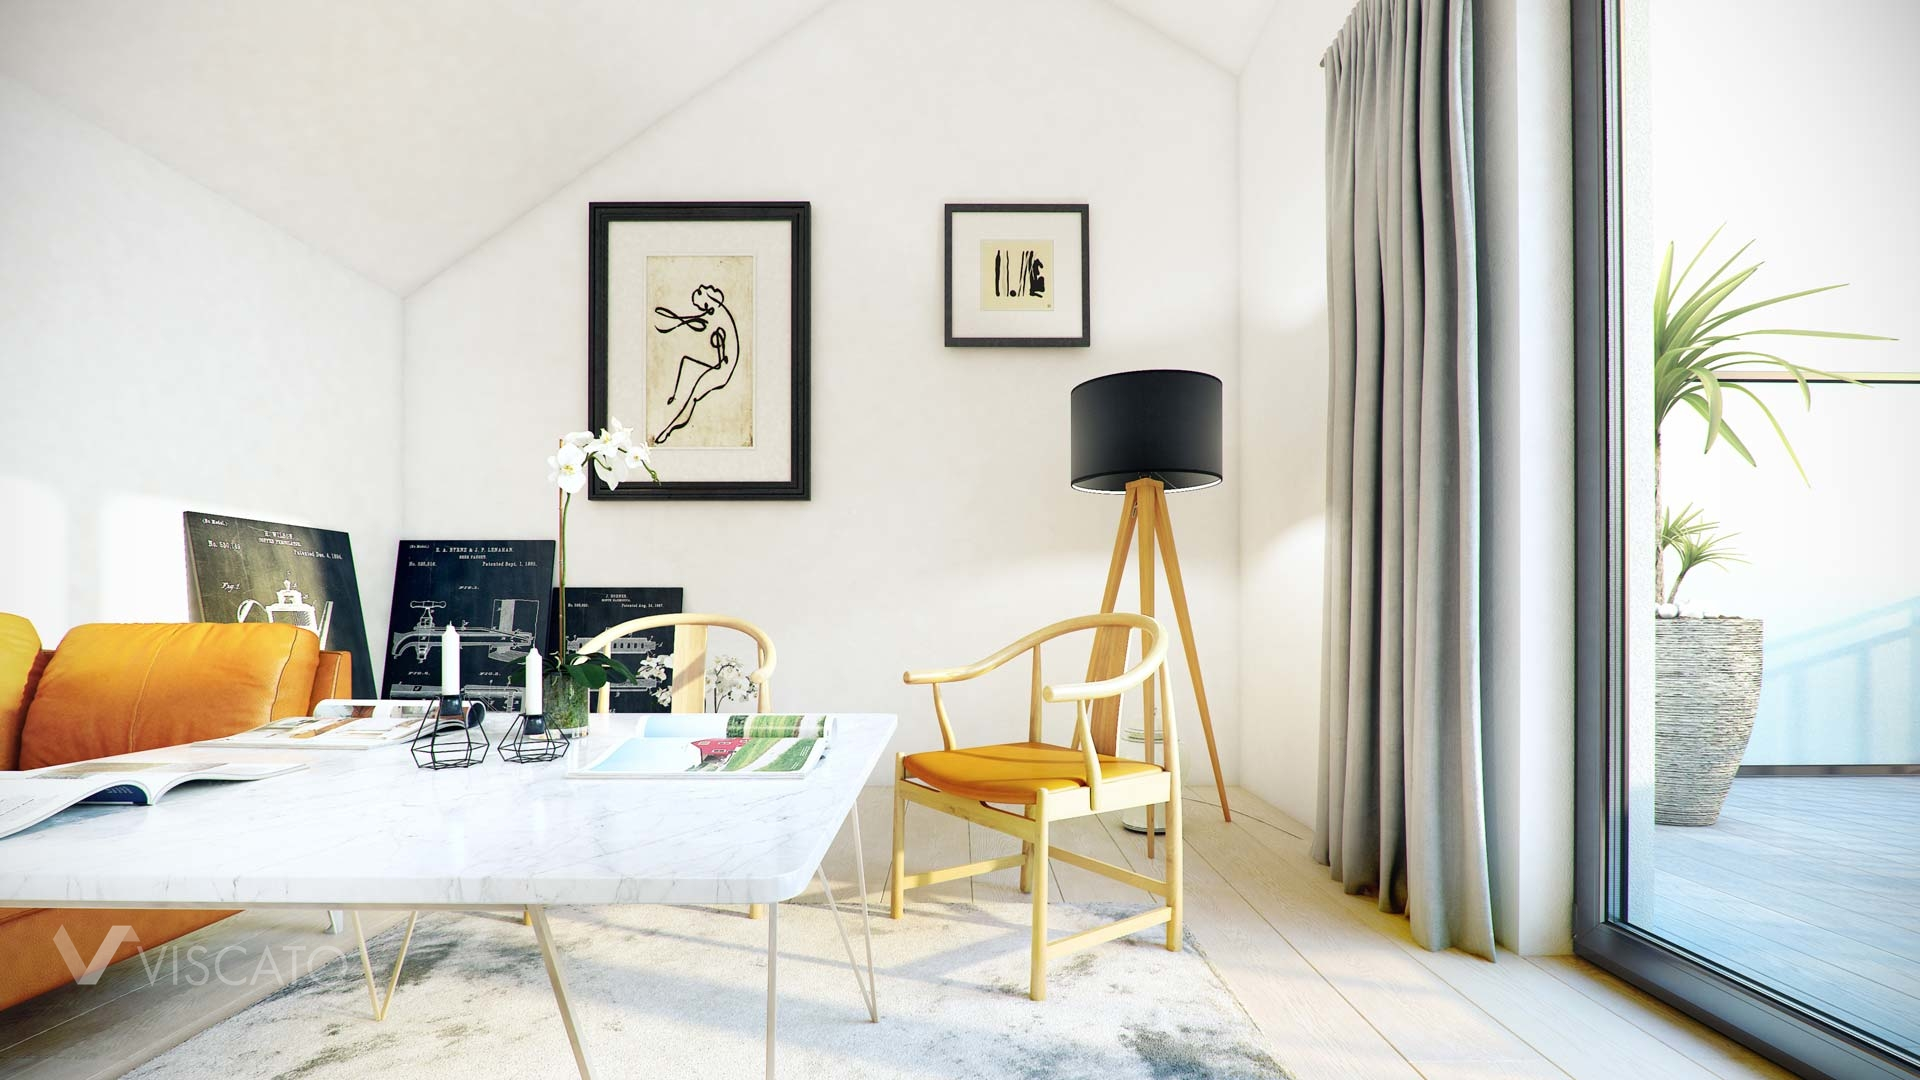 Attic interior - room with chairs, table and terrace entrance